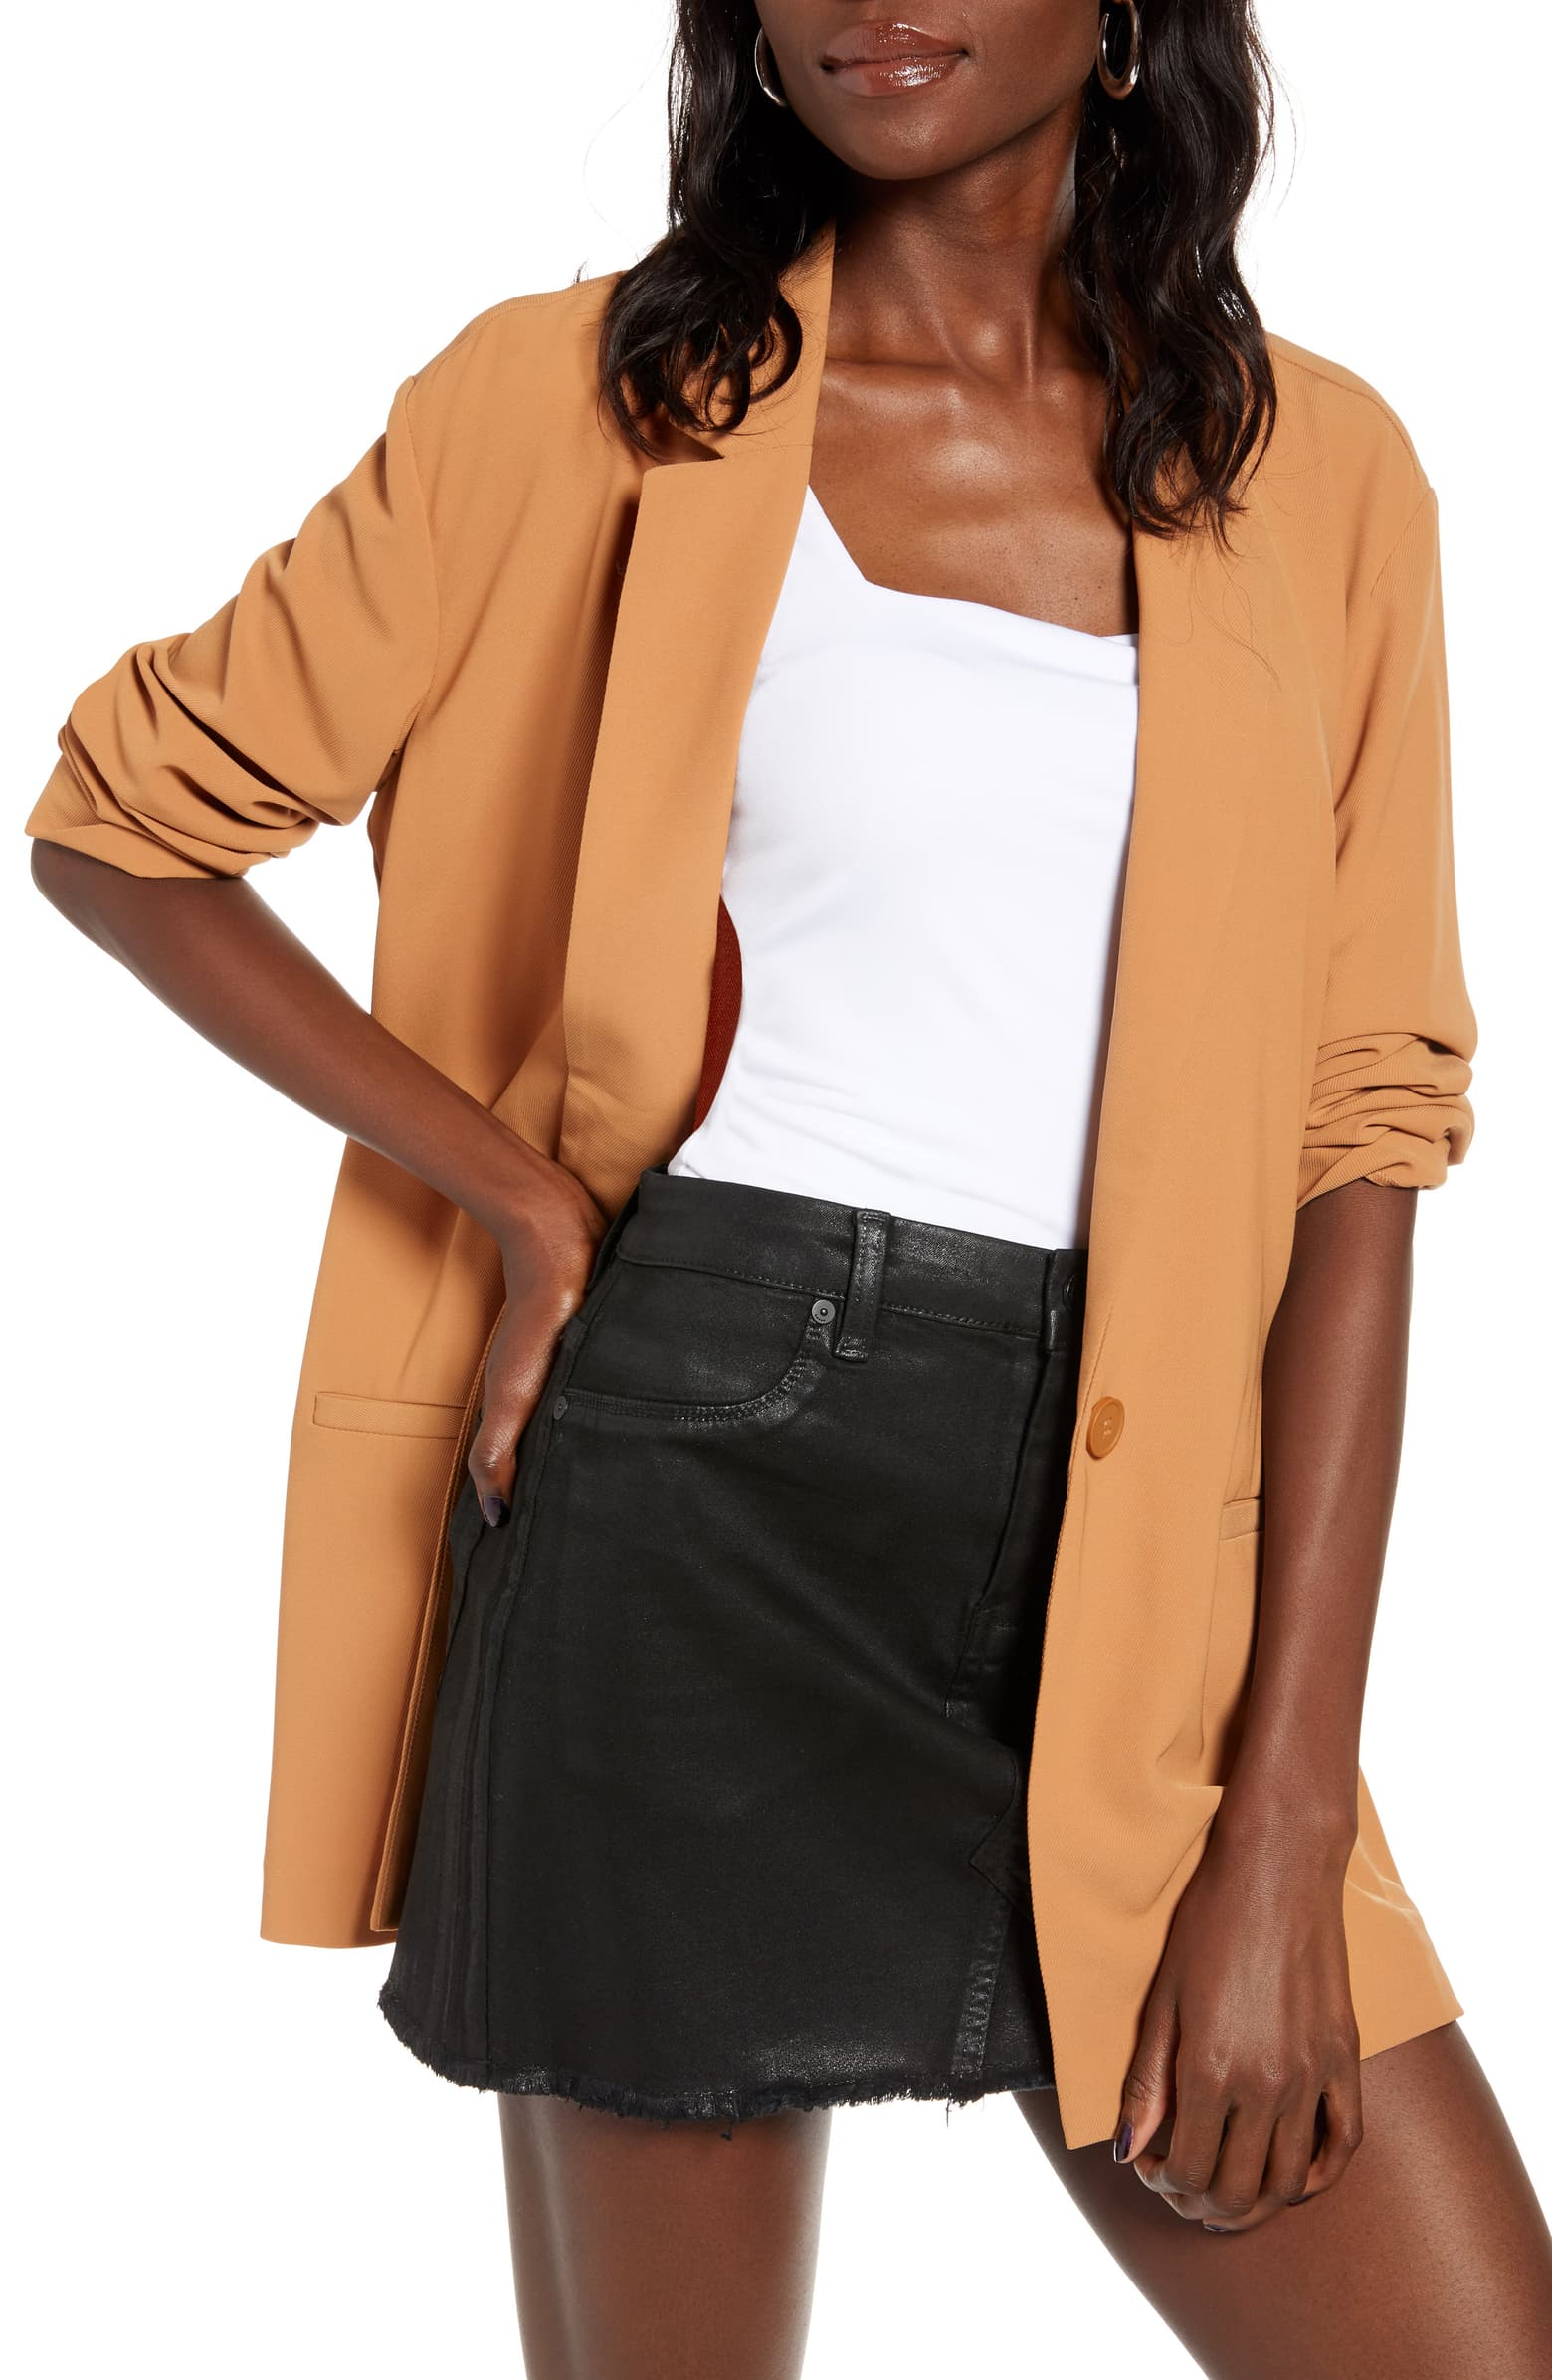 Nordstrom Anniversary Sale - #NSALE - Nordstrom Sale - Fall Fashion - Women's Fashion - Sabby Style-24